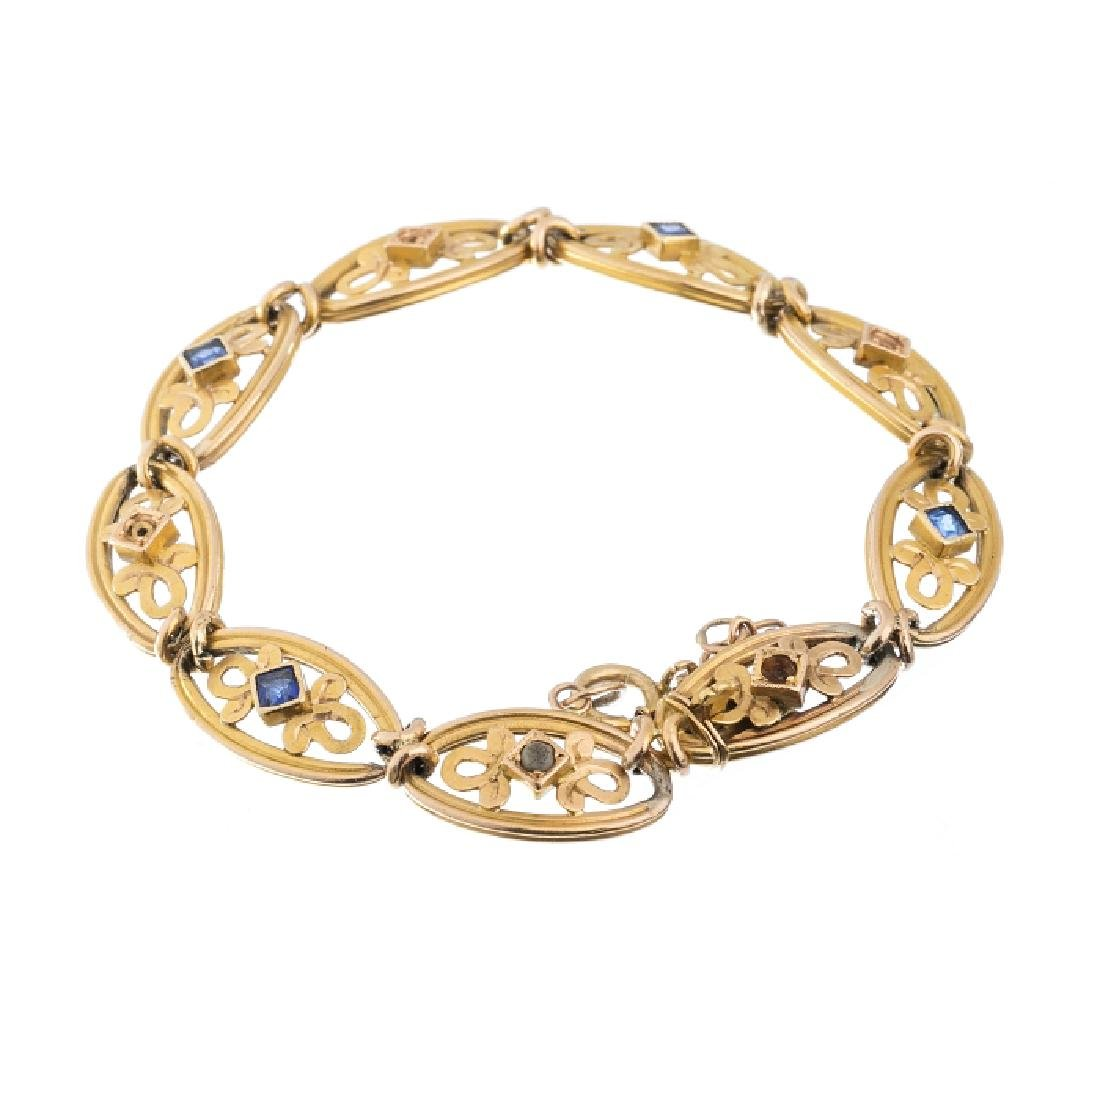 Gold bracelet with jewels